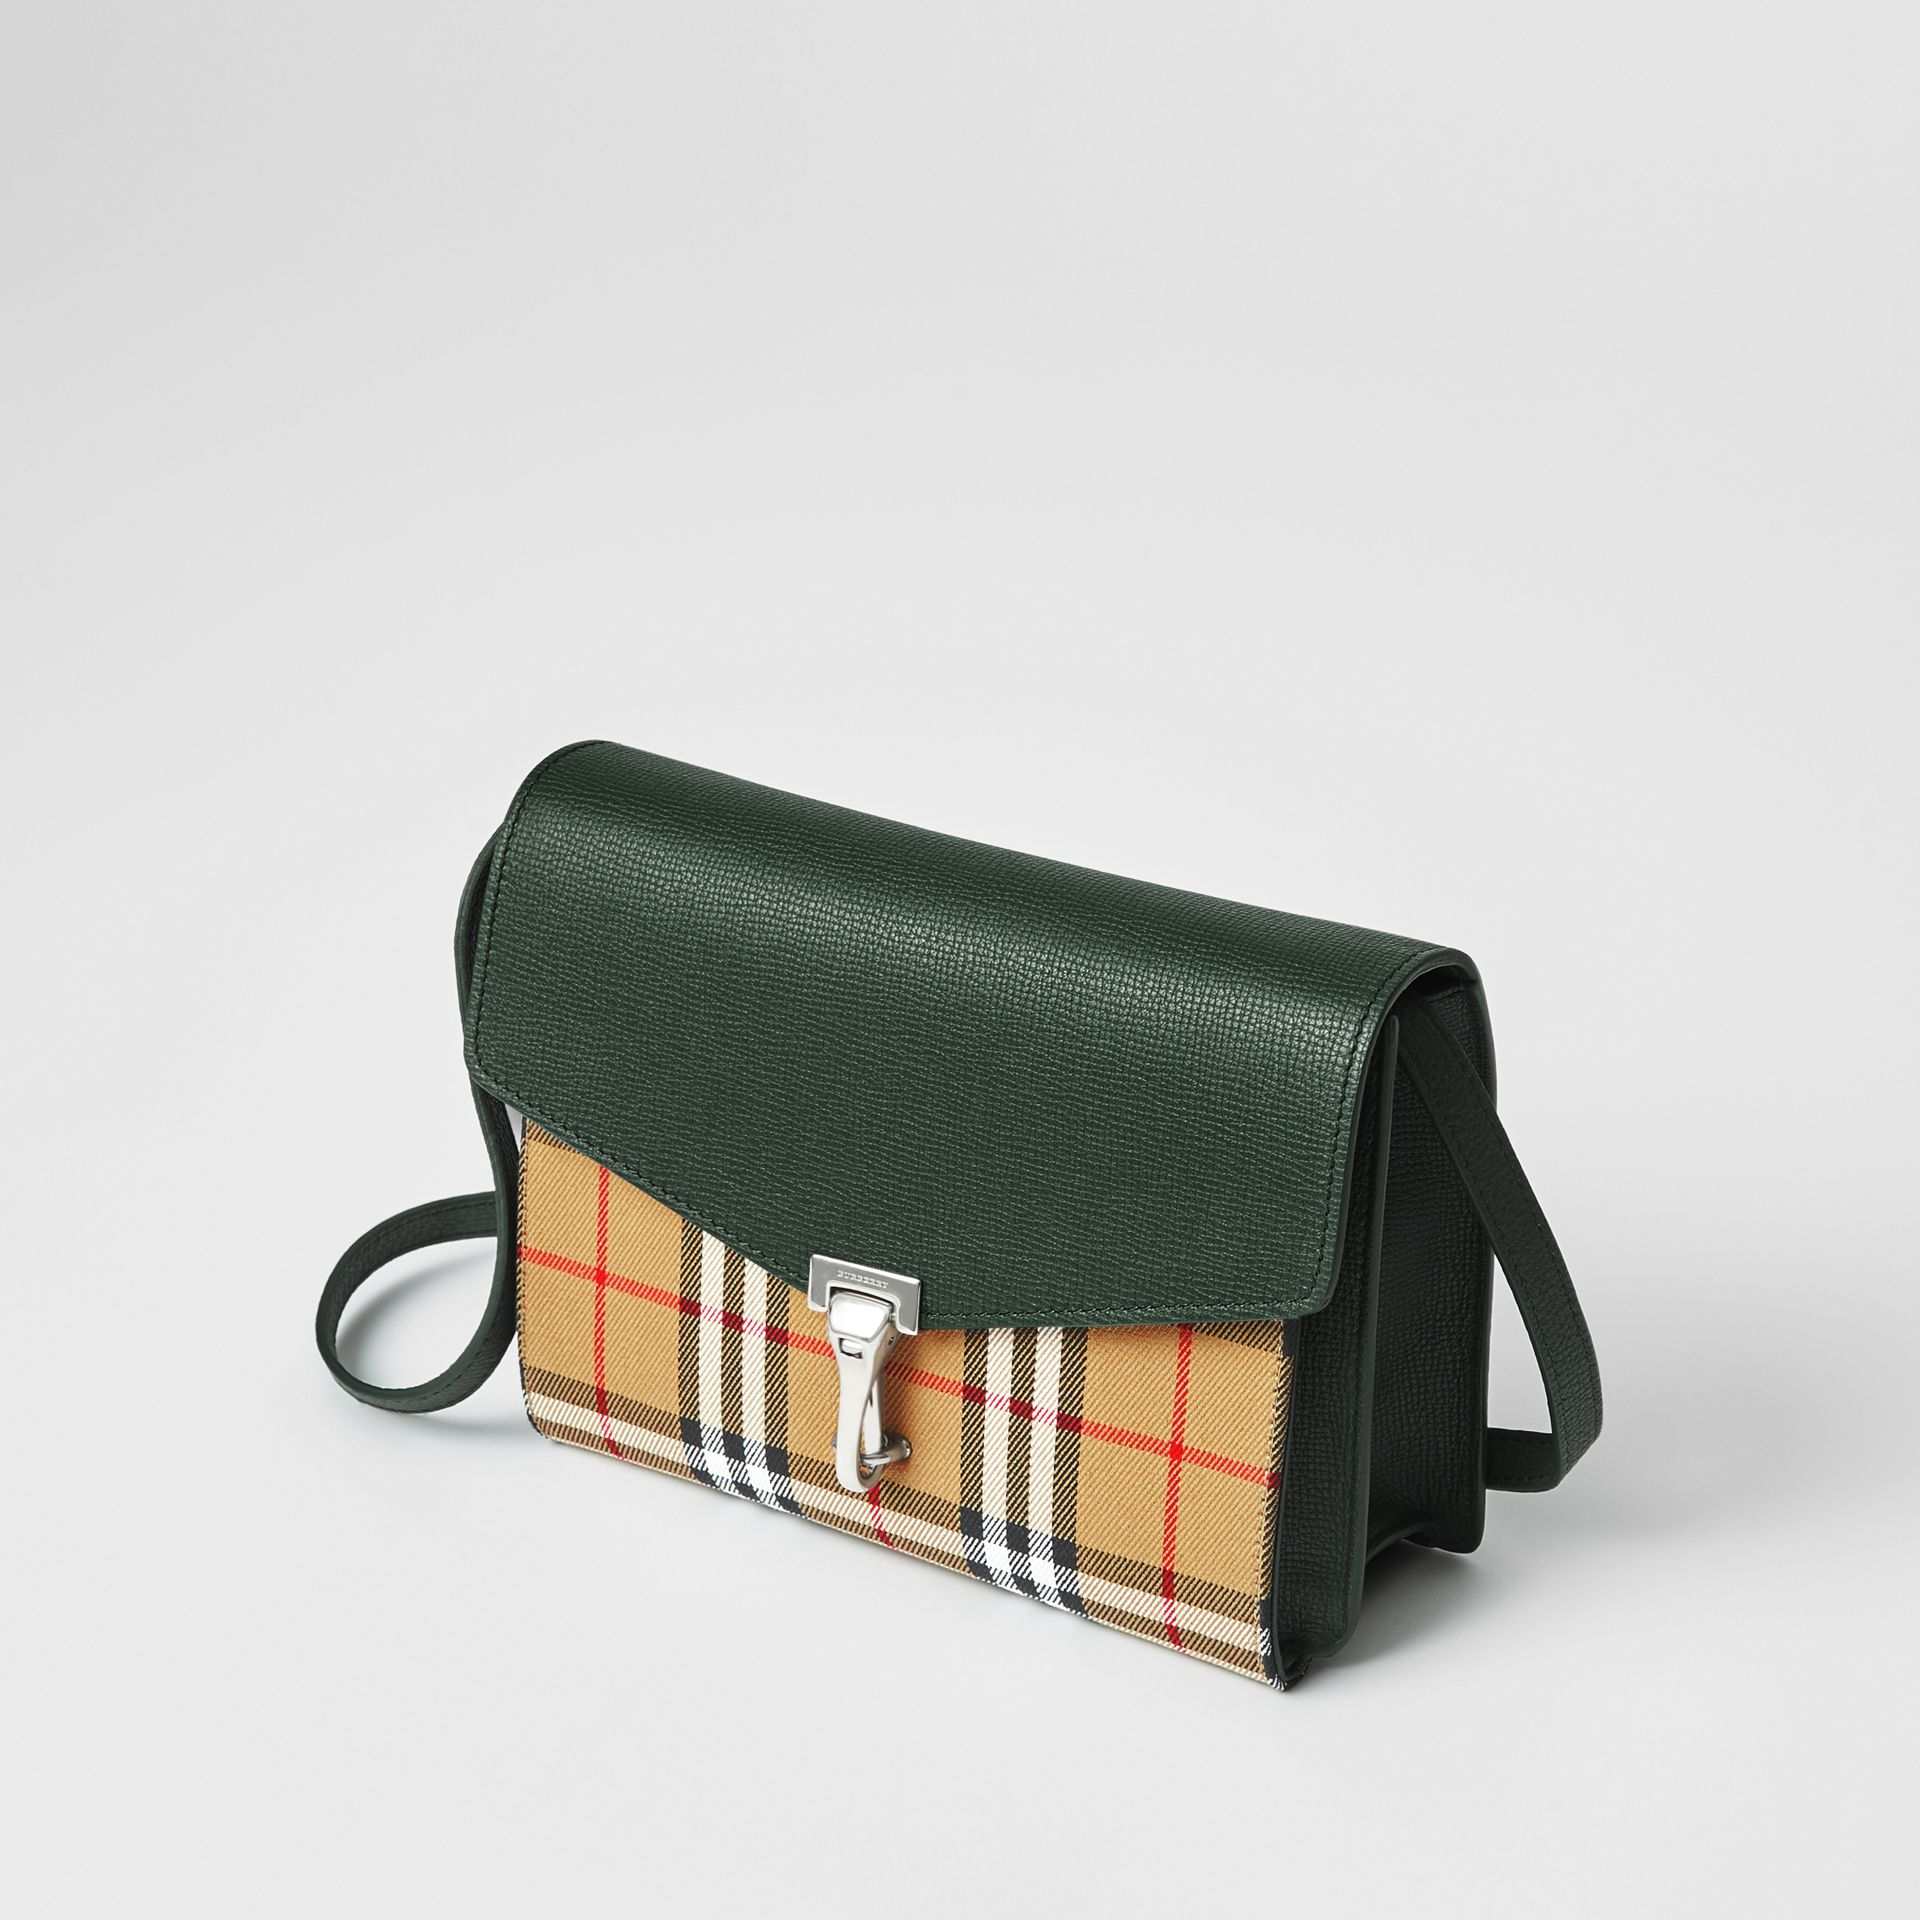 Small Vintage Check and Leather Crossbody Bag in Green - Women | Burberry - gallery image 4